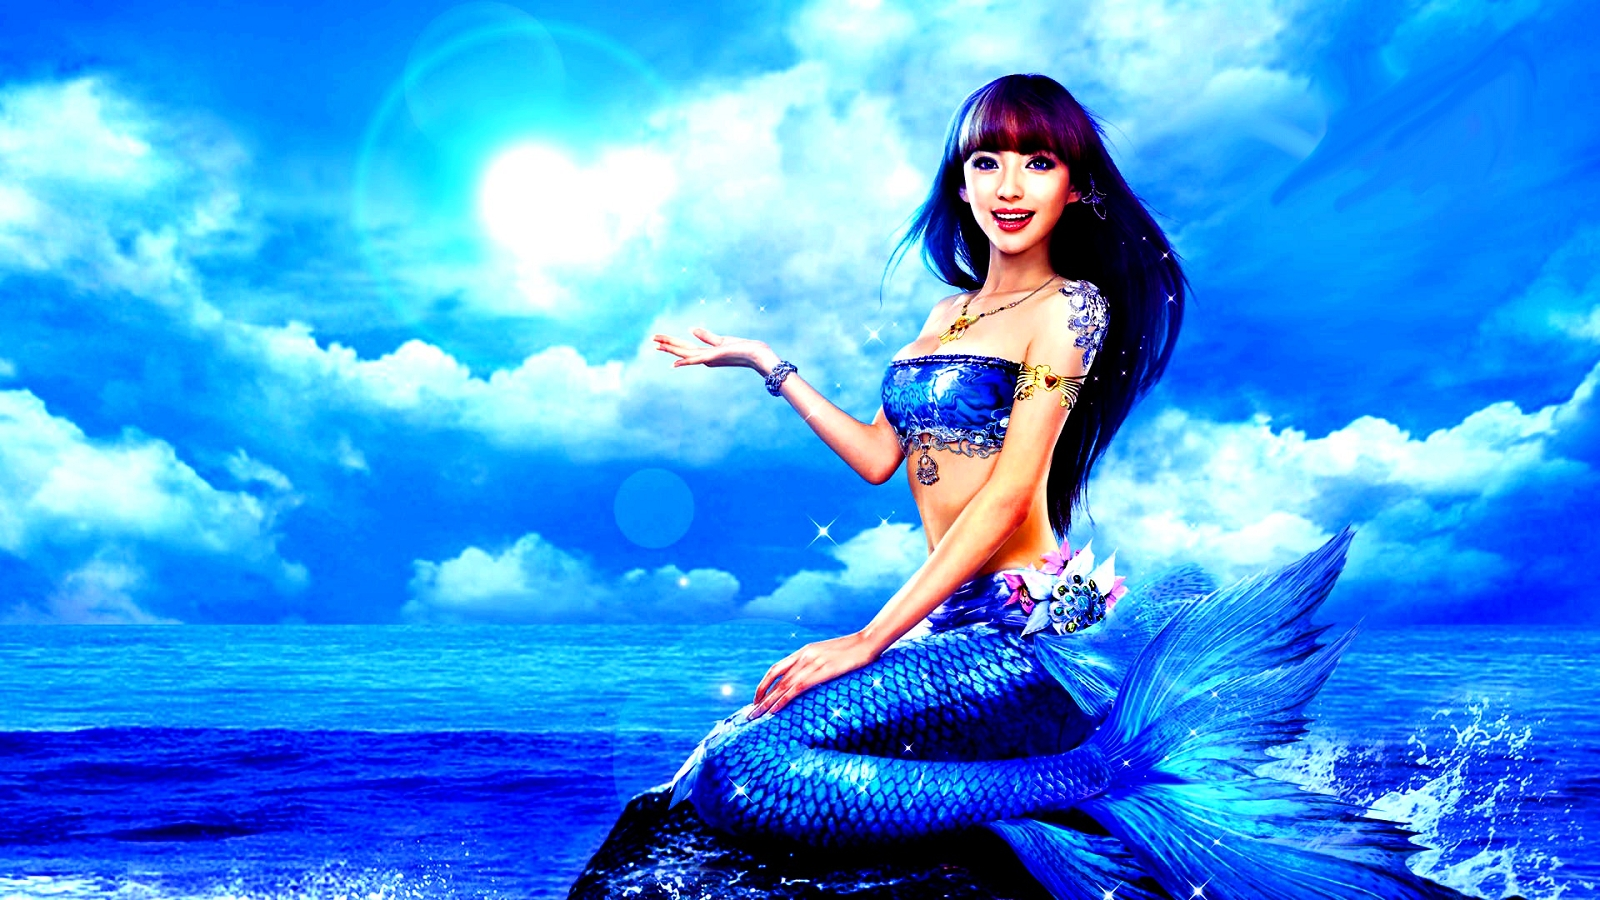 Blue Mermaid - Mermaids Wallpaper (34153261) - Fanpop fanclubs